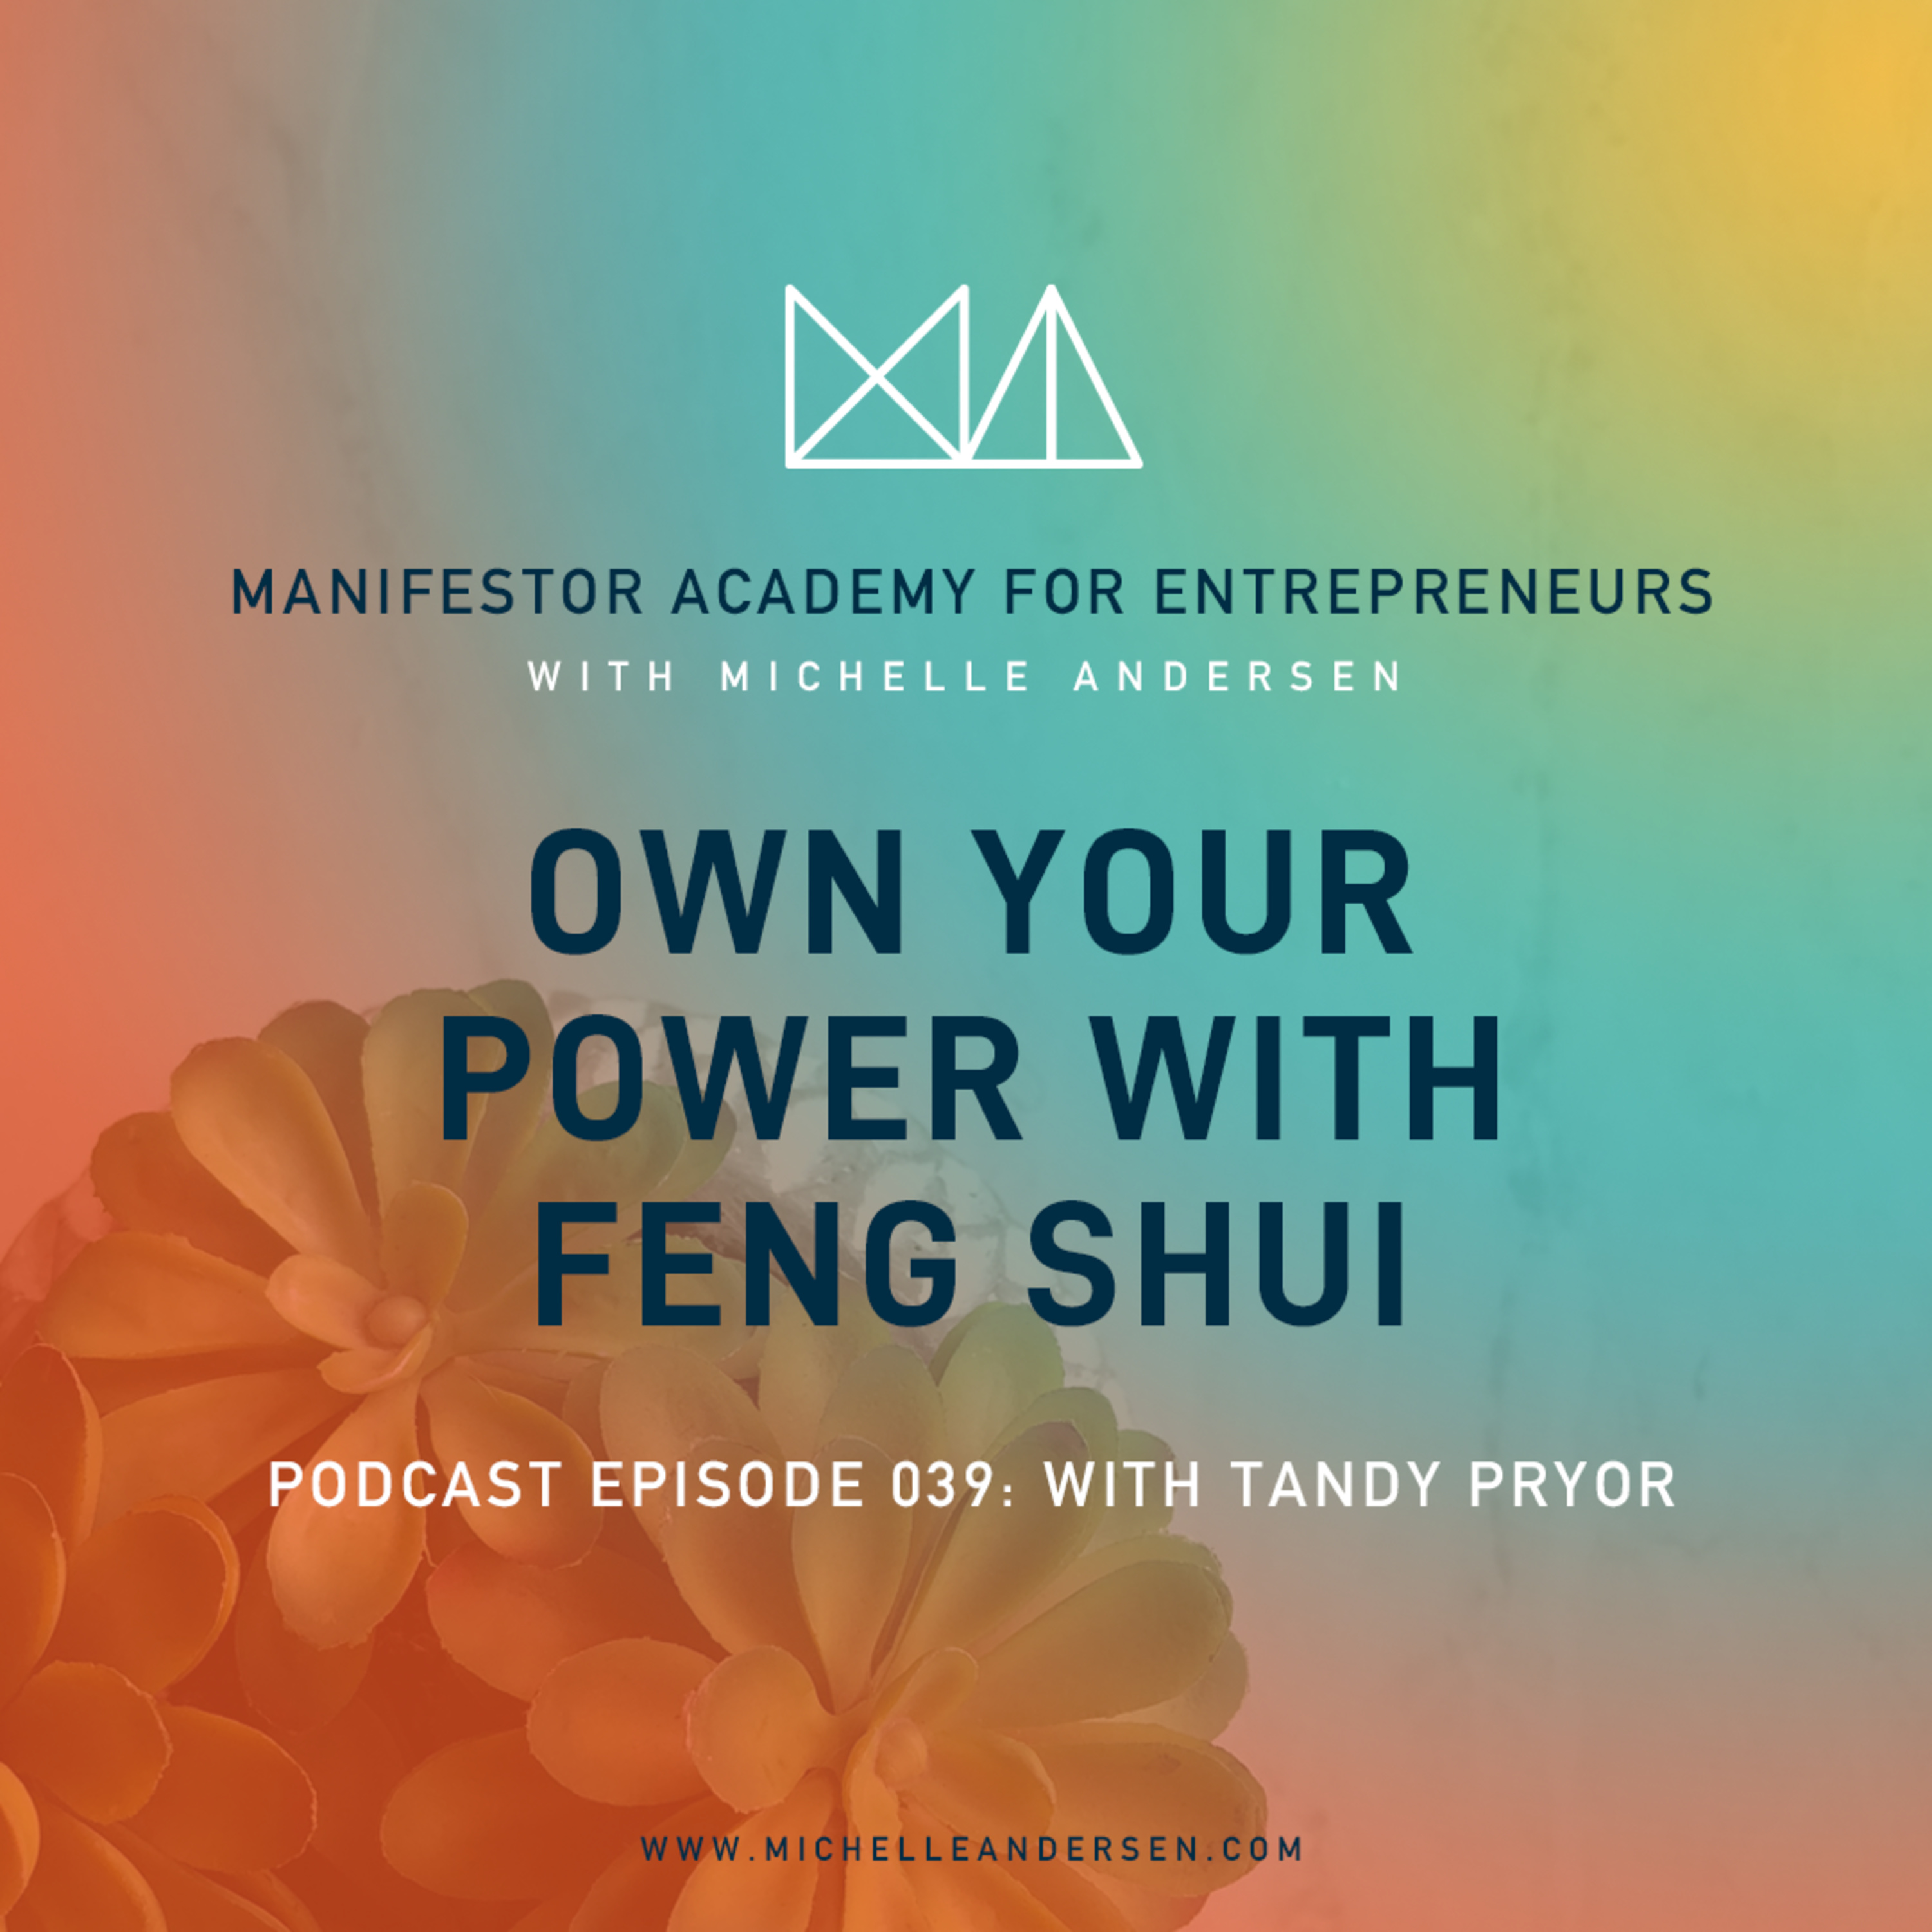 Tandy Pryor on Own Your Power With Feng Shui